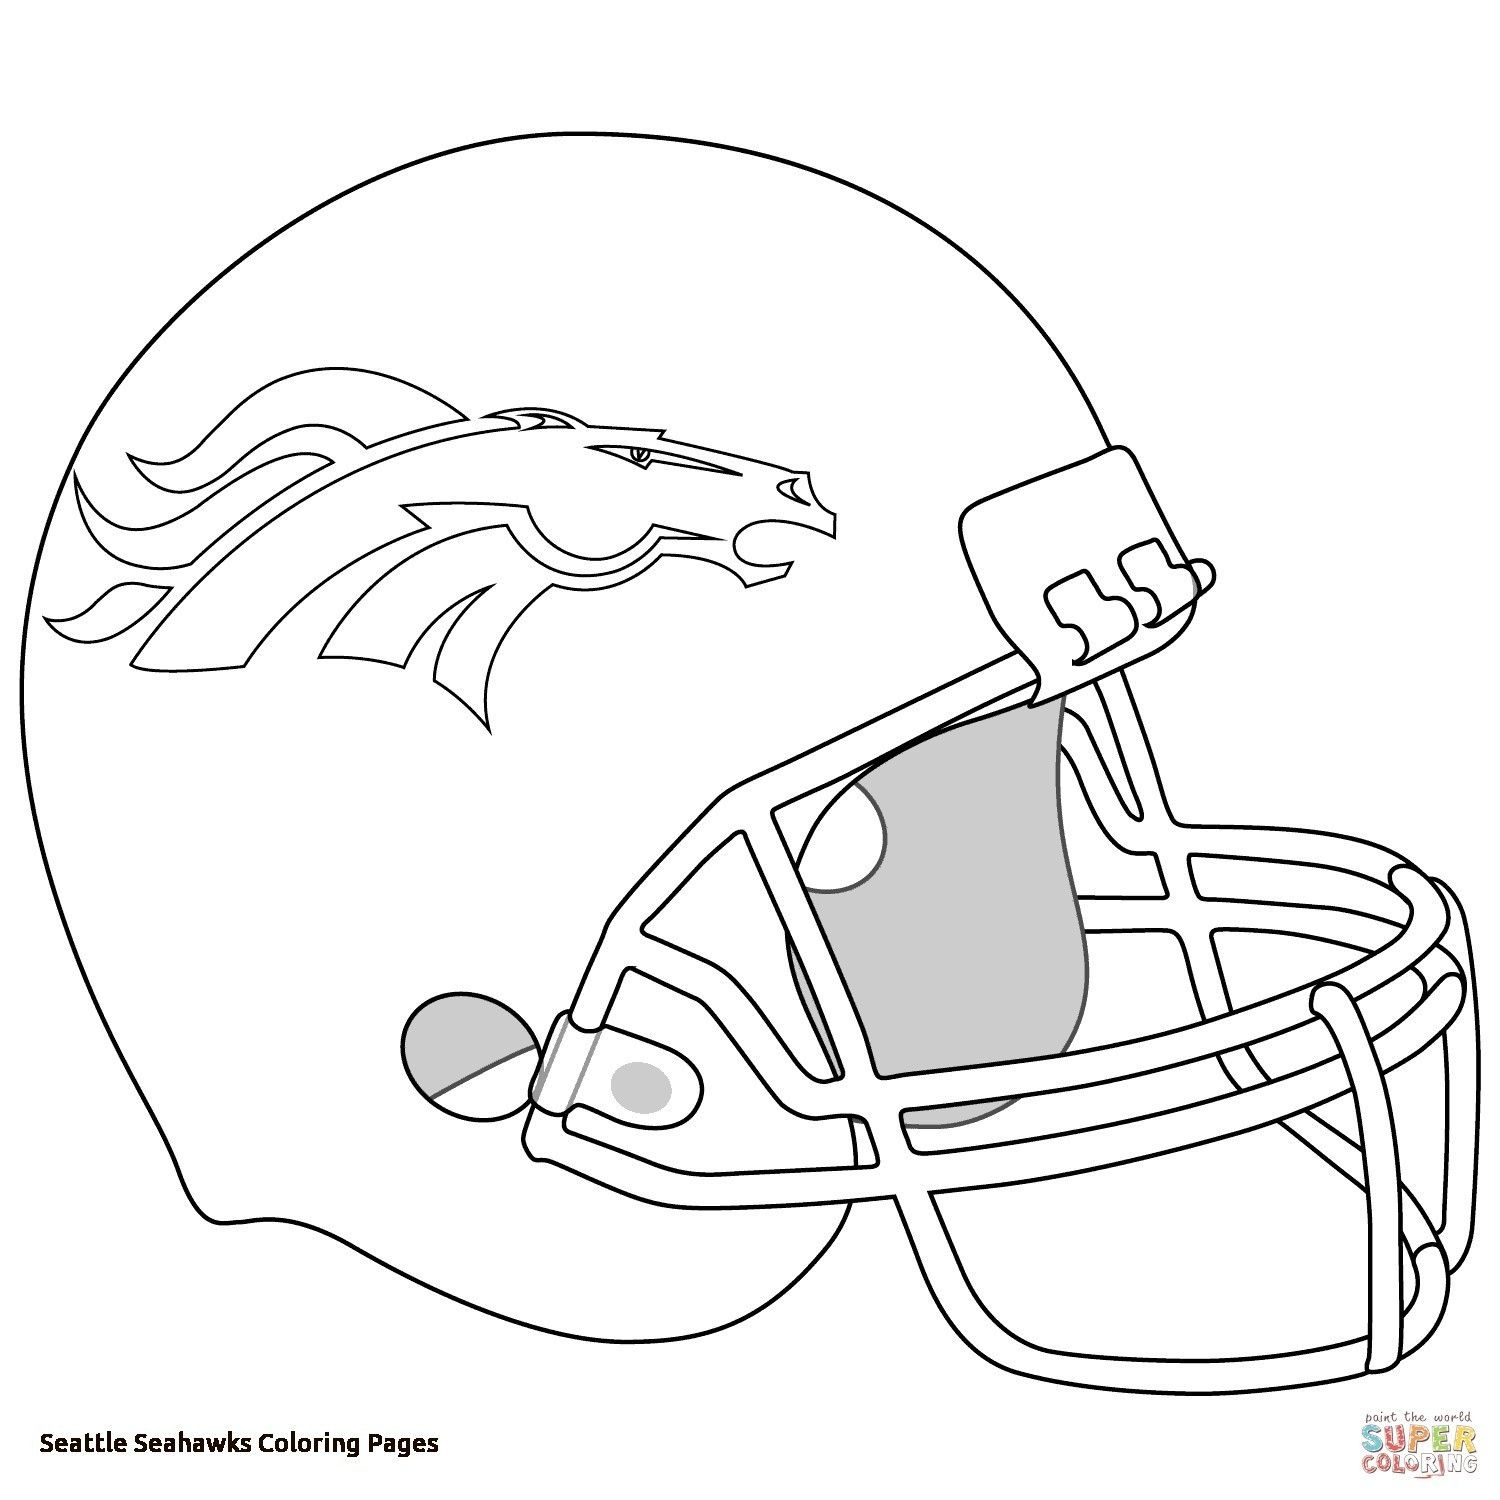 Football Helmet Coloring Pages 01 Football Coloring Pages Football Template Football Helmets